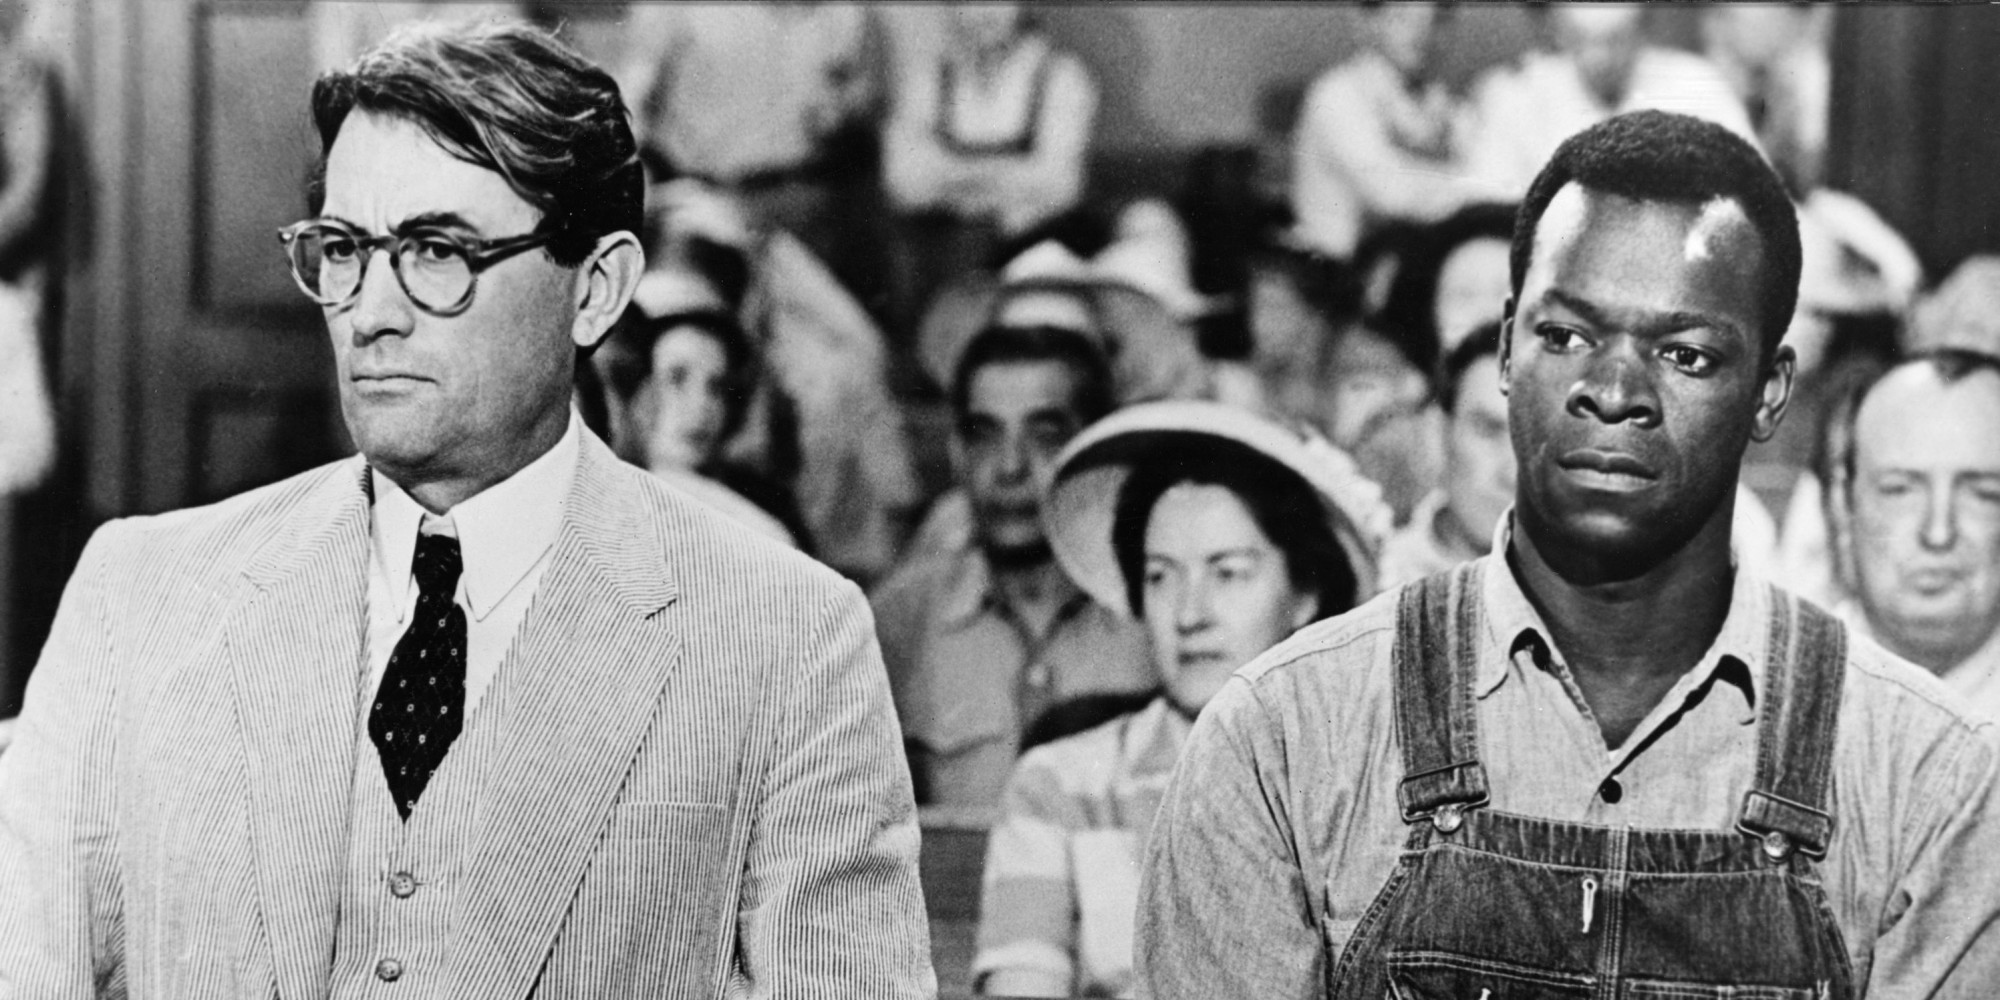 a review of the plot and the trial ending scene in to kill a mockingbird a film by robert mulligan To kill a mockingbird is a 1962 american drama film directed by robert mulligan the screenplay by horton foote is based on harper lee 's 1960 pulitzer prize -winning novel of the same name.